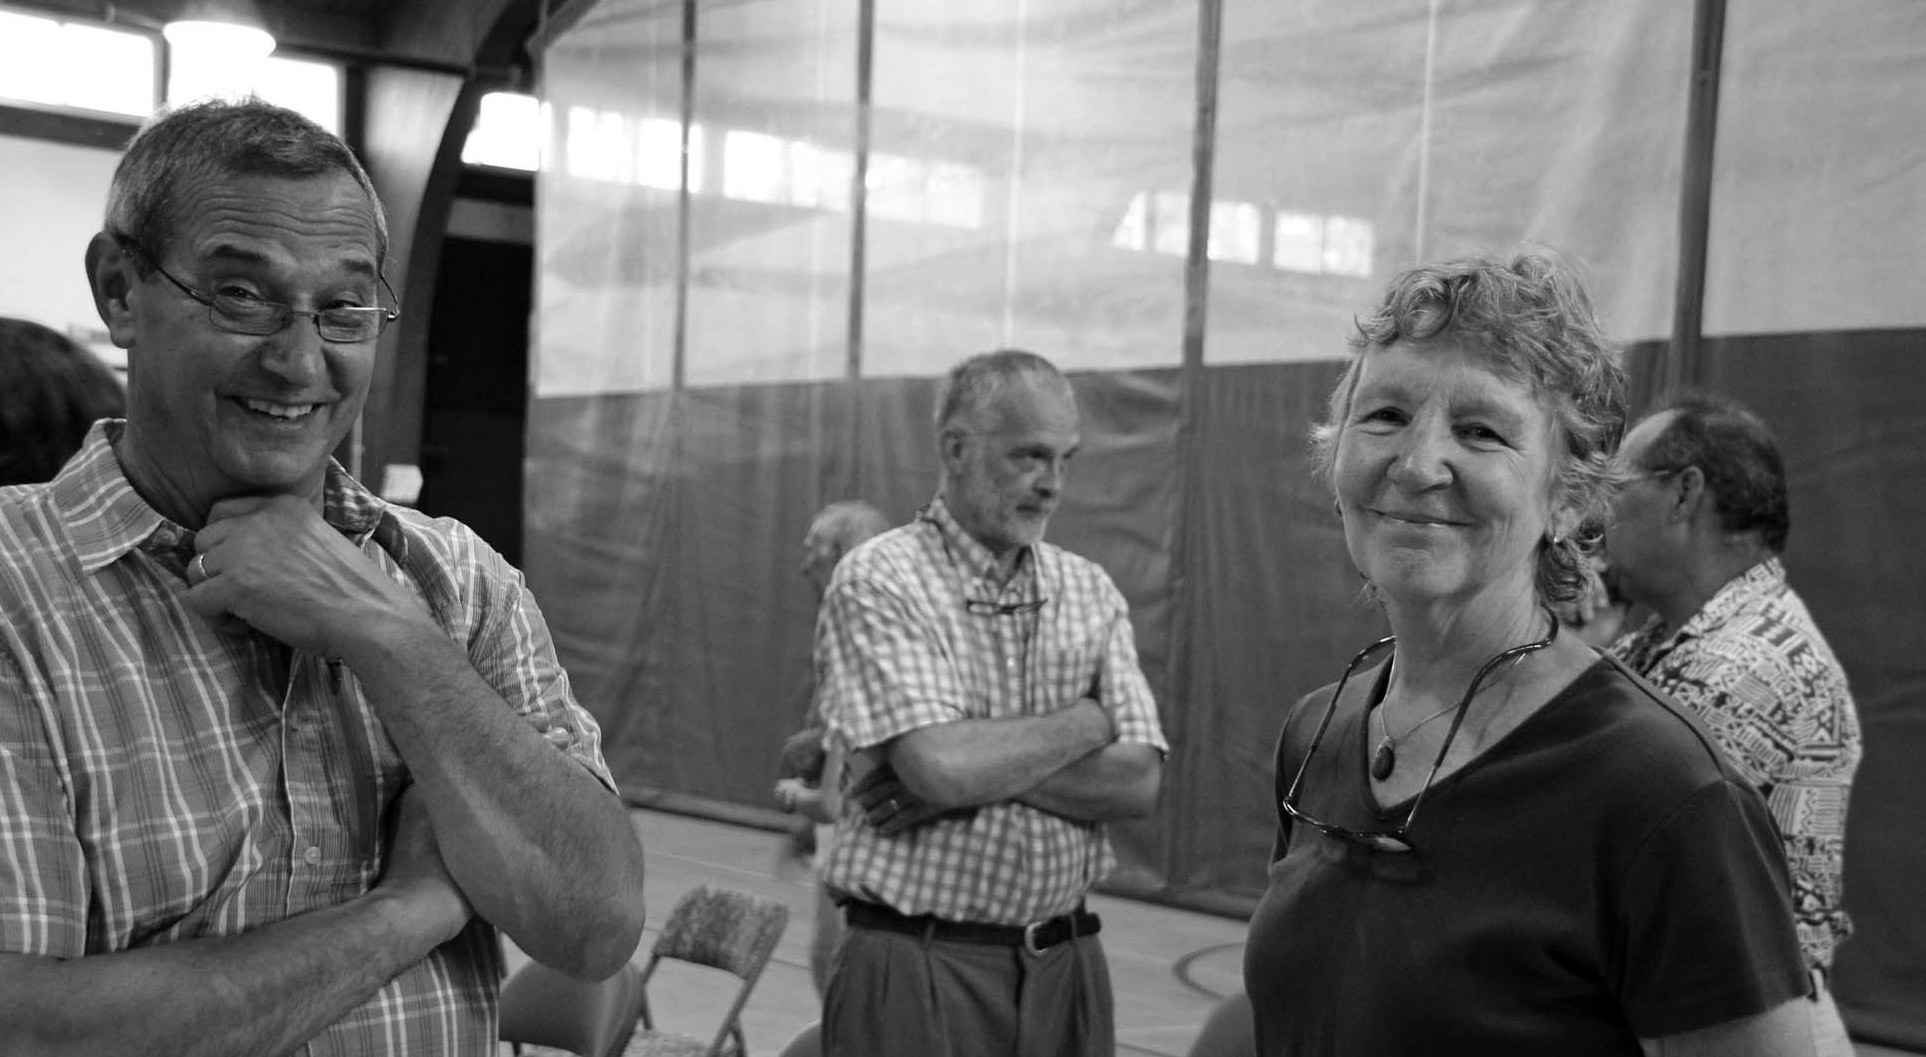 Jean Noon, right, of Springvale, shown chatting with Al Mastraccio, was nominated Monday by Democrats in House District 19 as their candidate for the Nov. 3 special election to fill the vacancy created by the death of her husband Bill Noon. Bob Frechette, also of Springvale, had also sought the Democratic nod. Noon will square off against GOP candidate Matthew Harrington. As well, Sanford City Councilor Victor DiGregorio is gathering signatures to make an independent run for the seat.